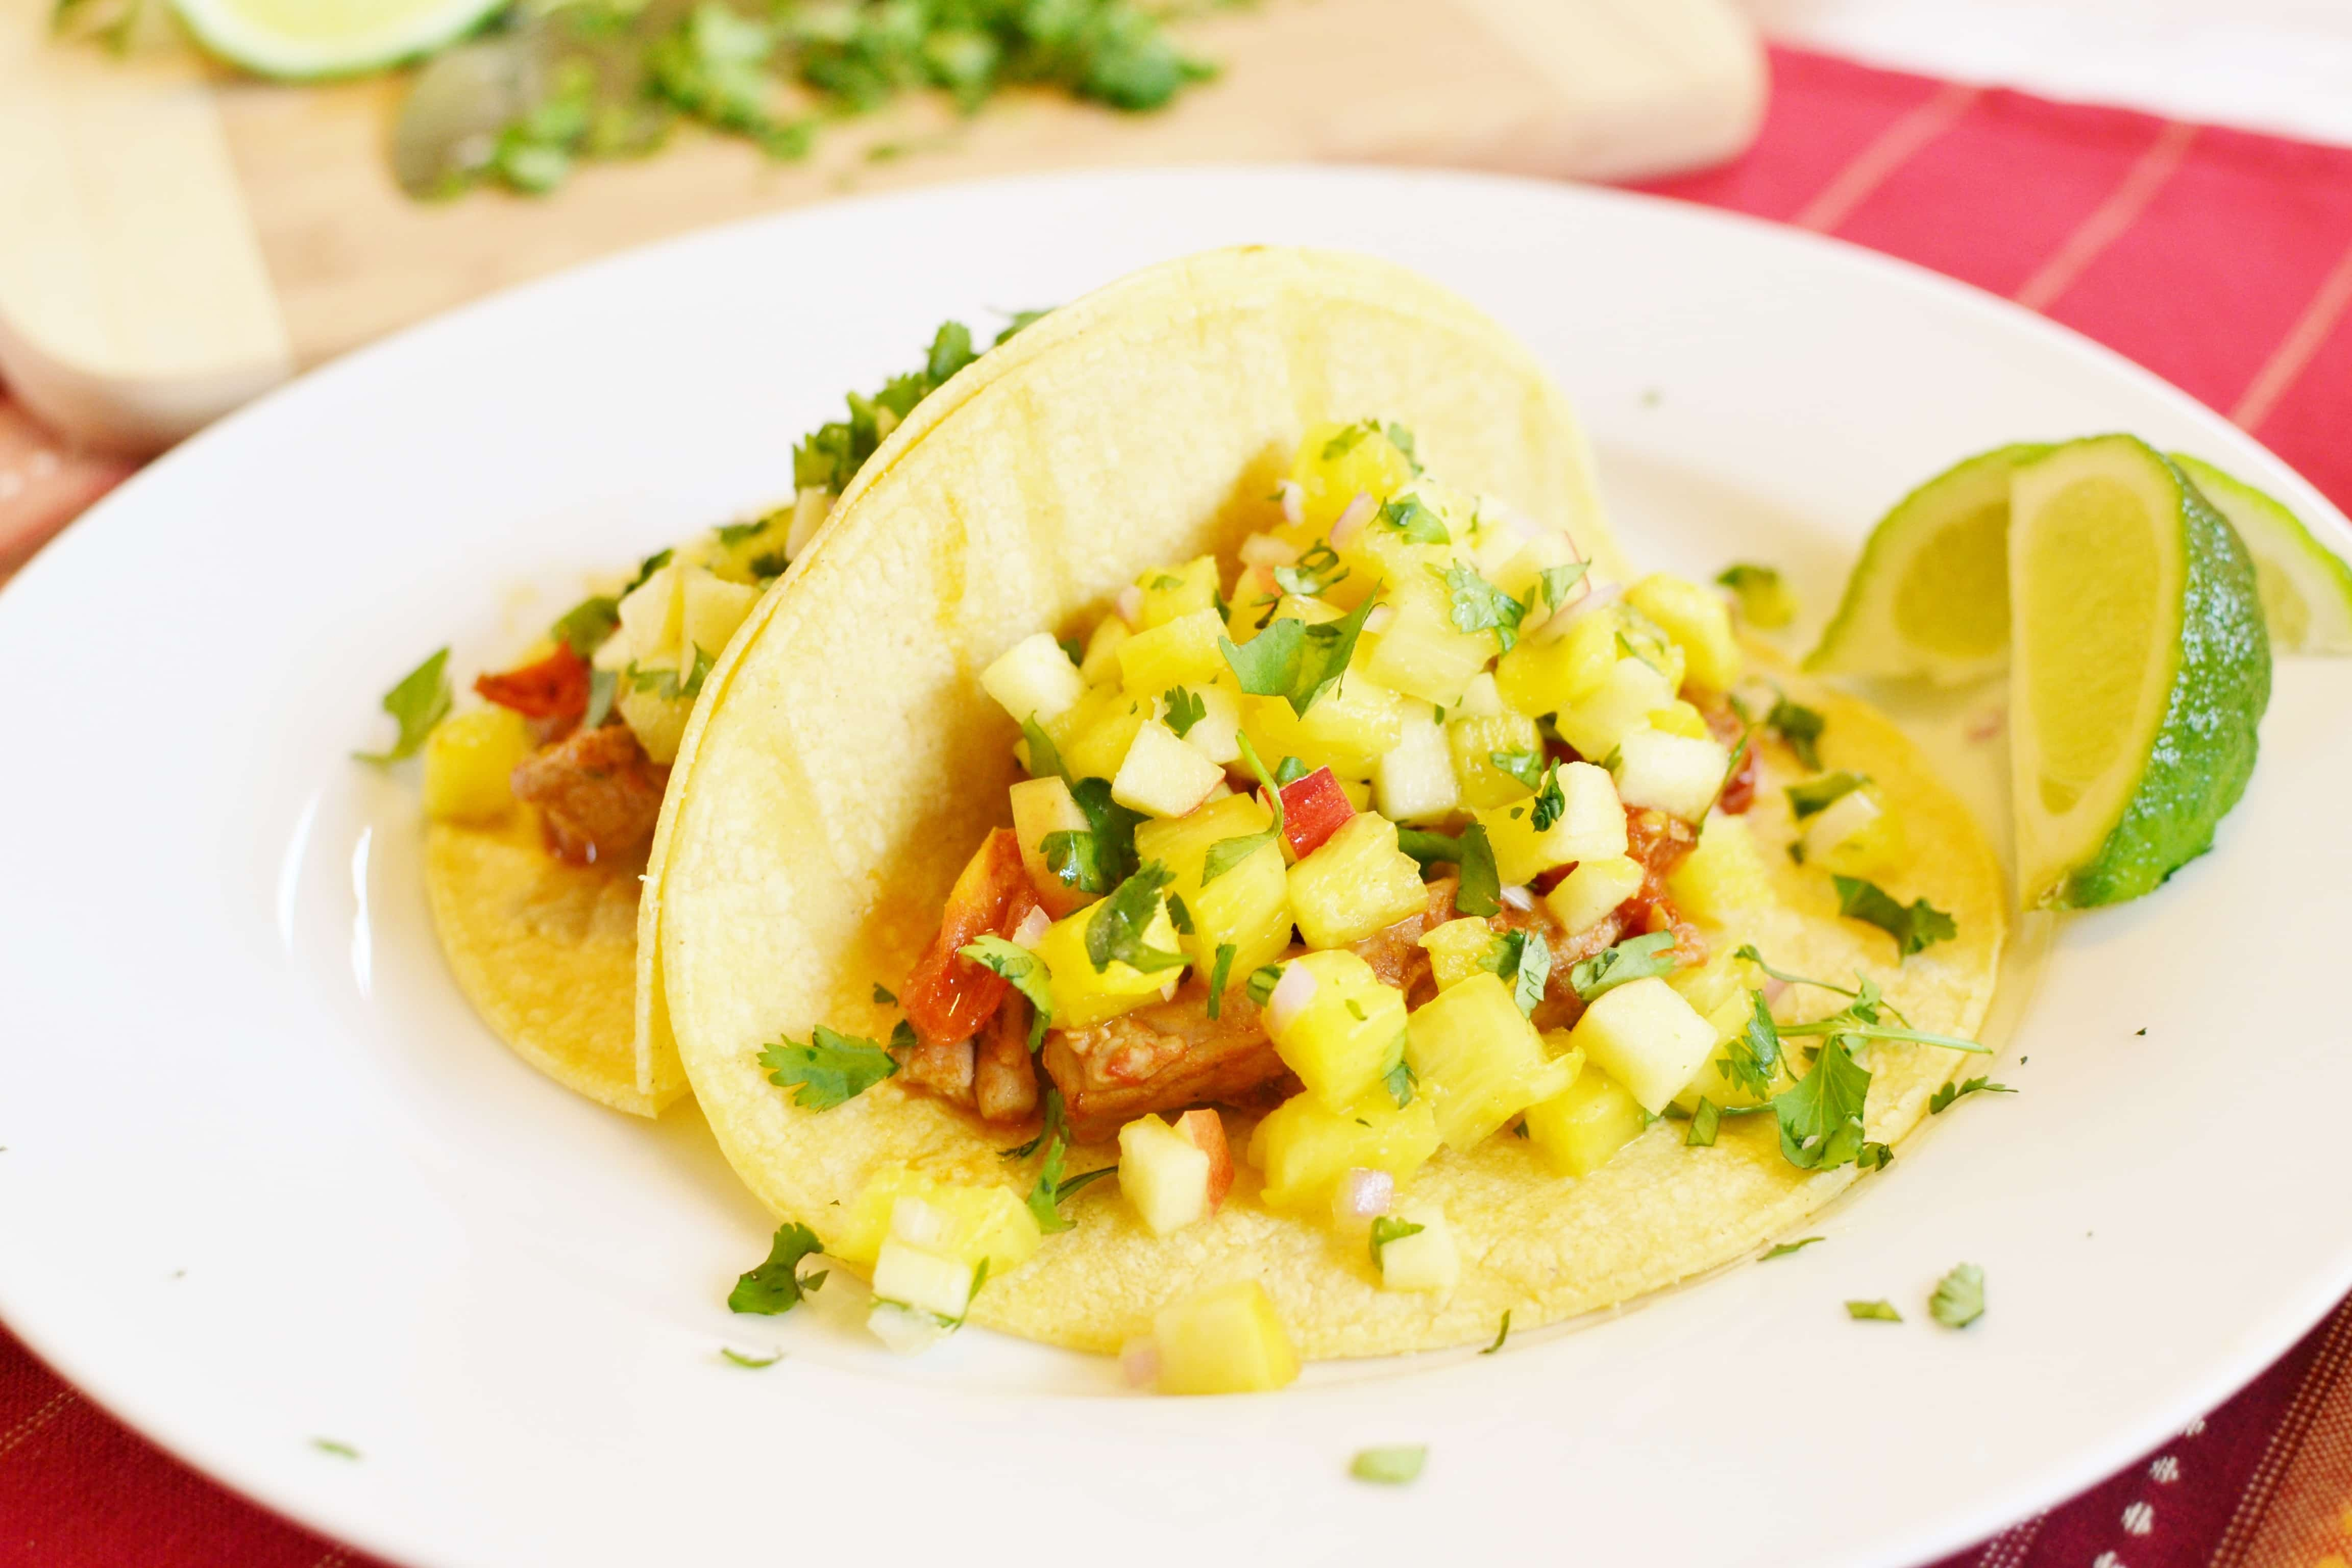 21 Day Fix Chipotle Pork Soft Tacos with Pineapple Salsa